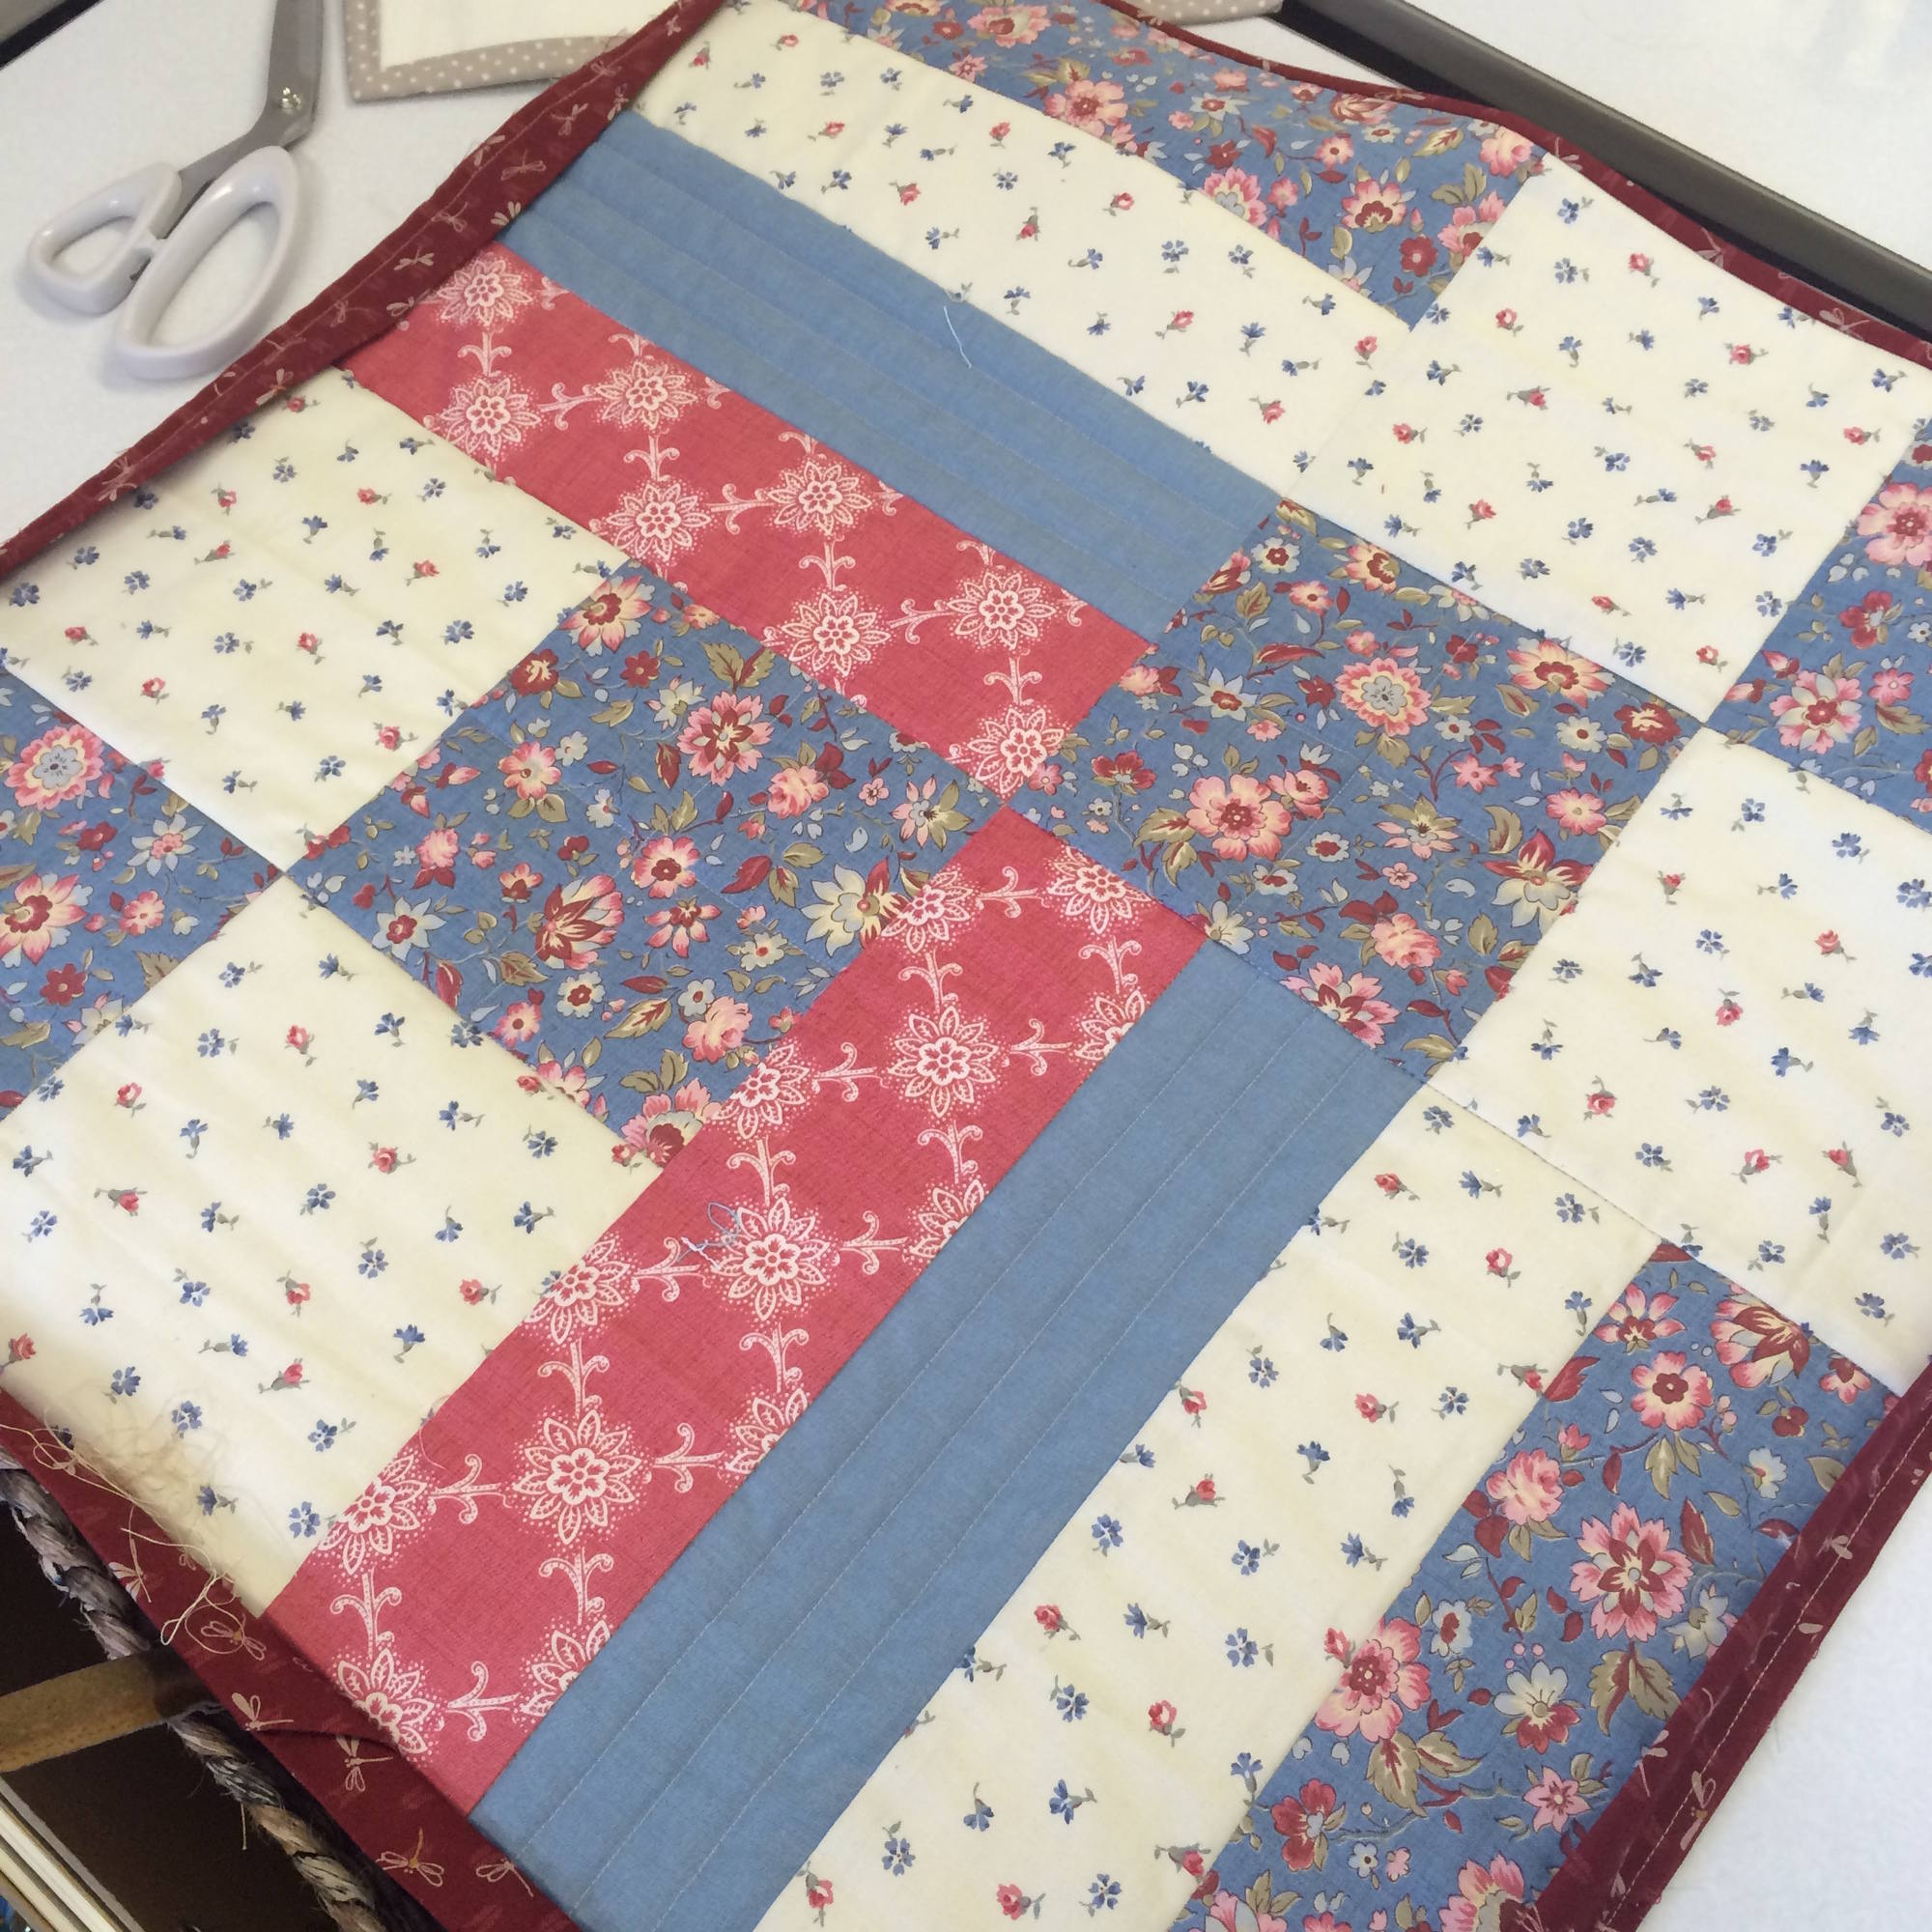 Exeter Sewing Patchwork Amp Quilting For Beginners